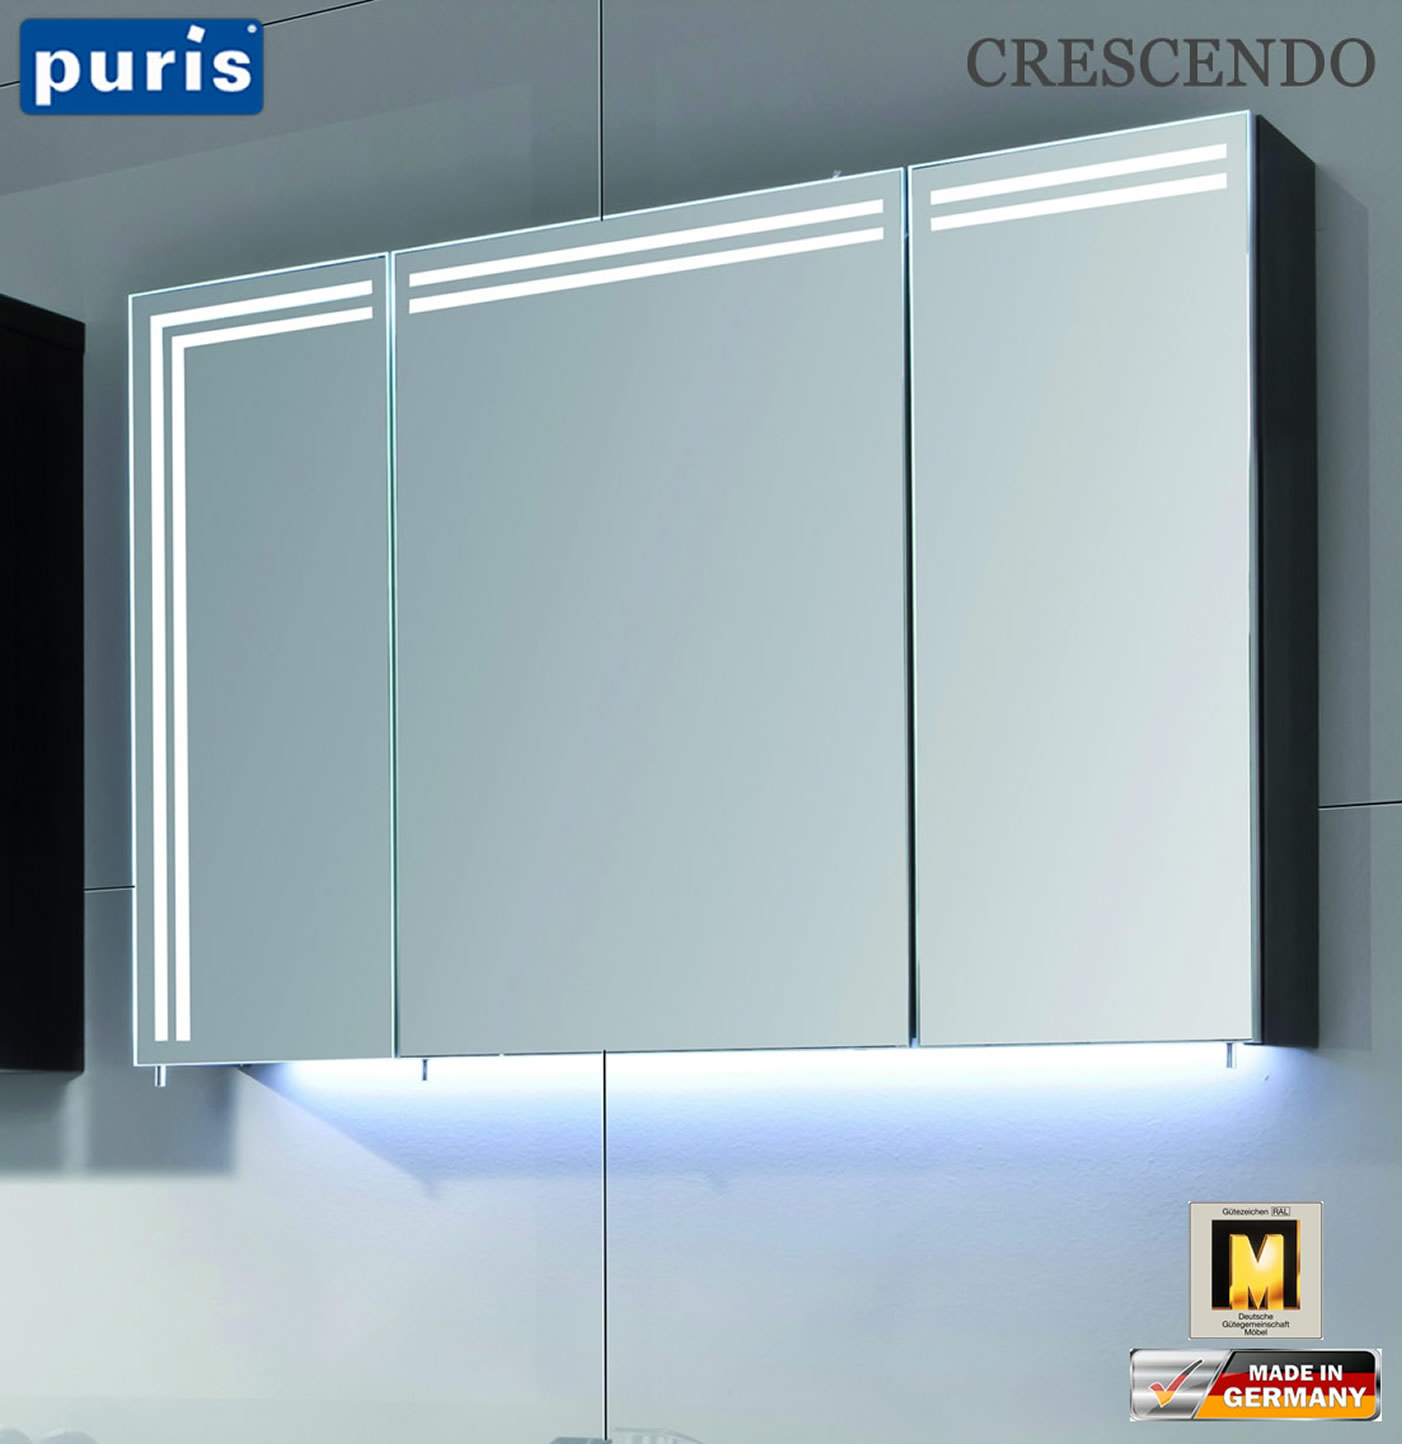 puris crescendo led spiegelschrank 90 cm s2a439r23. Black Bedroom Furniture Sets. Home Design Ideas